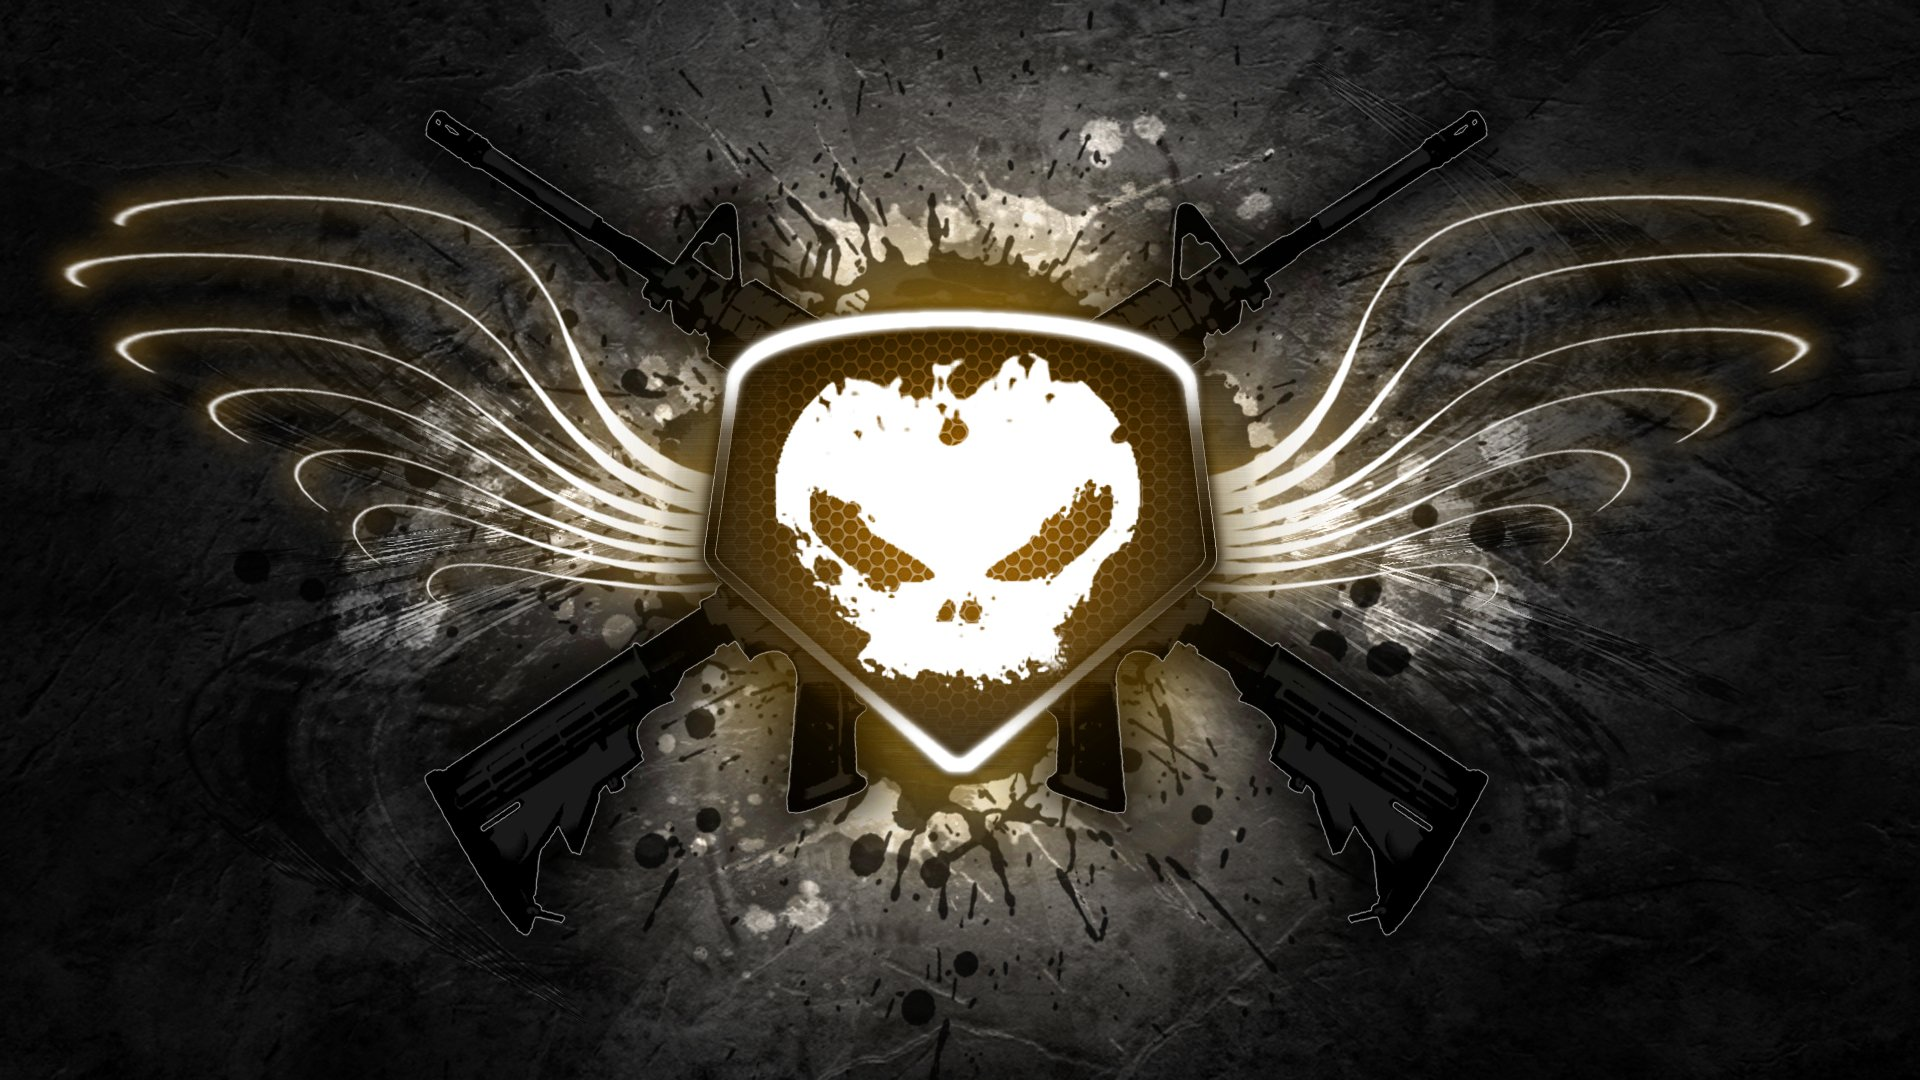 Cool HD Skull Wallpapers (47 Wallpapers) - Adorable Wallpapers